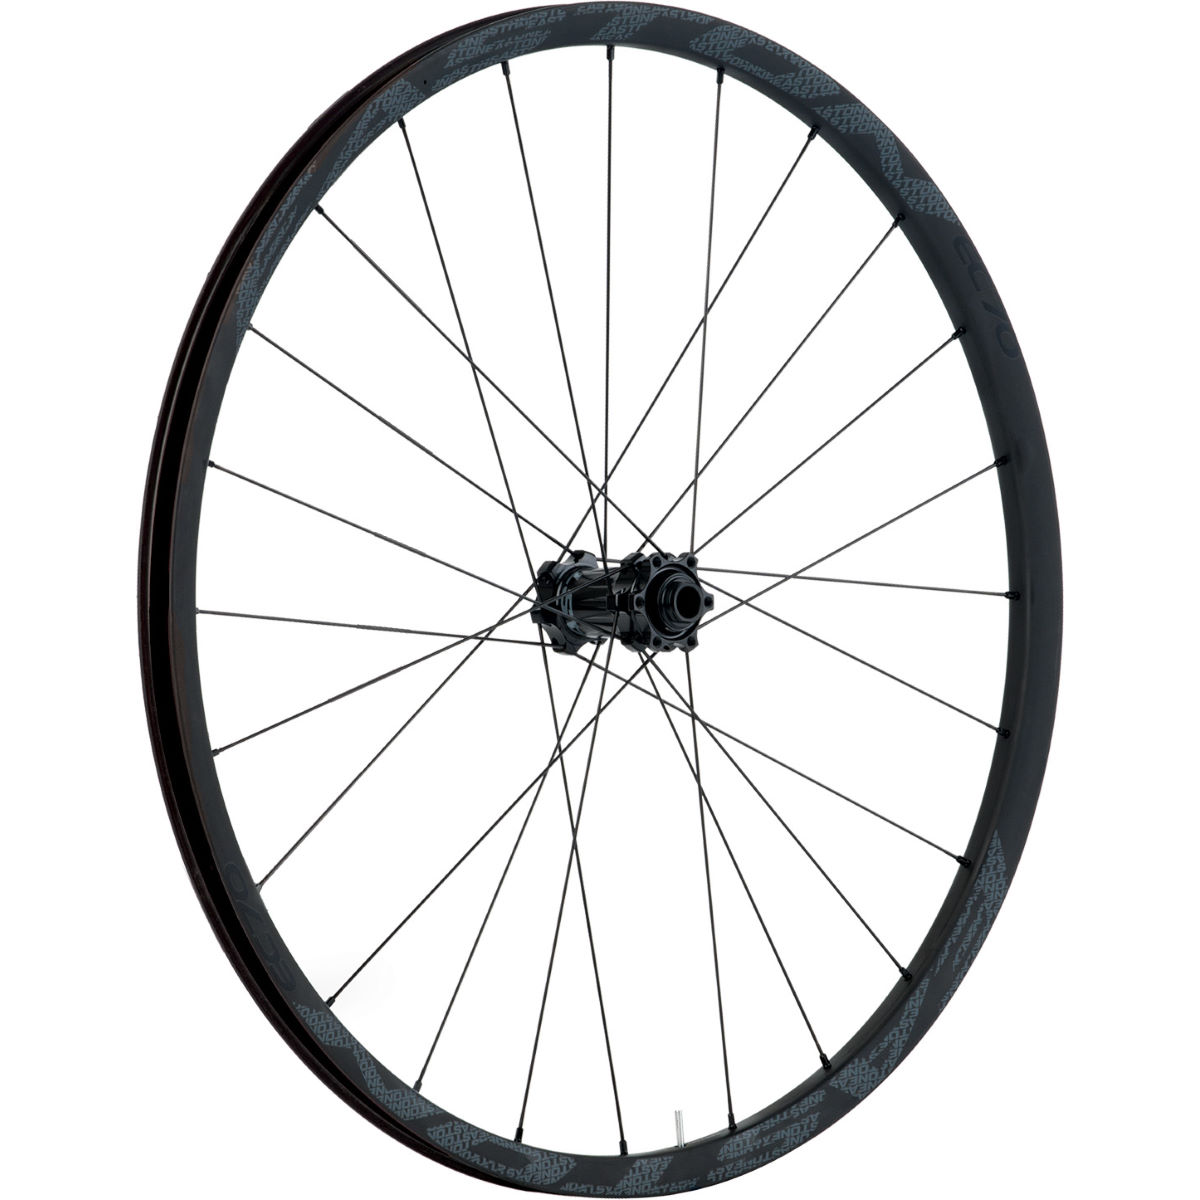 Easton EC70 Trail Front Wheel - Ruedas de competición